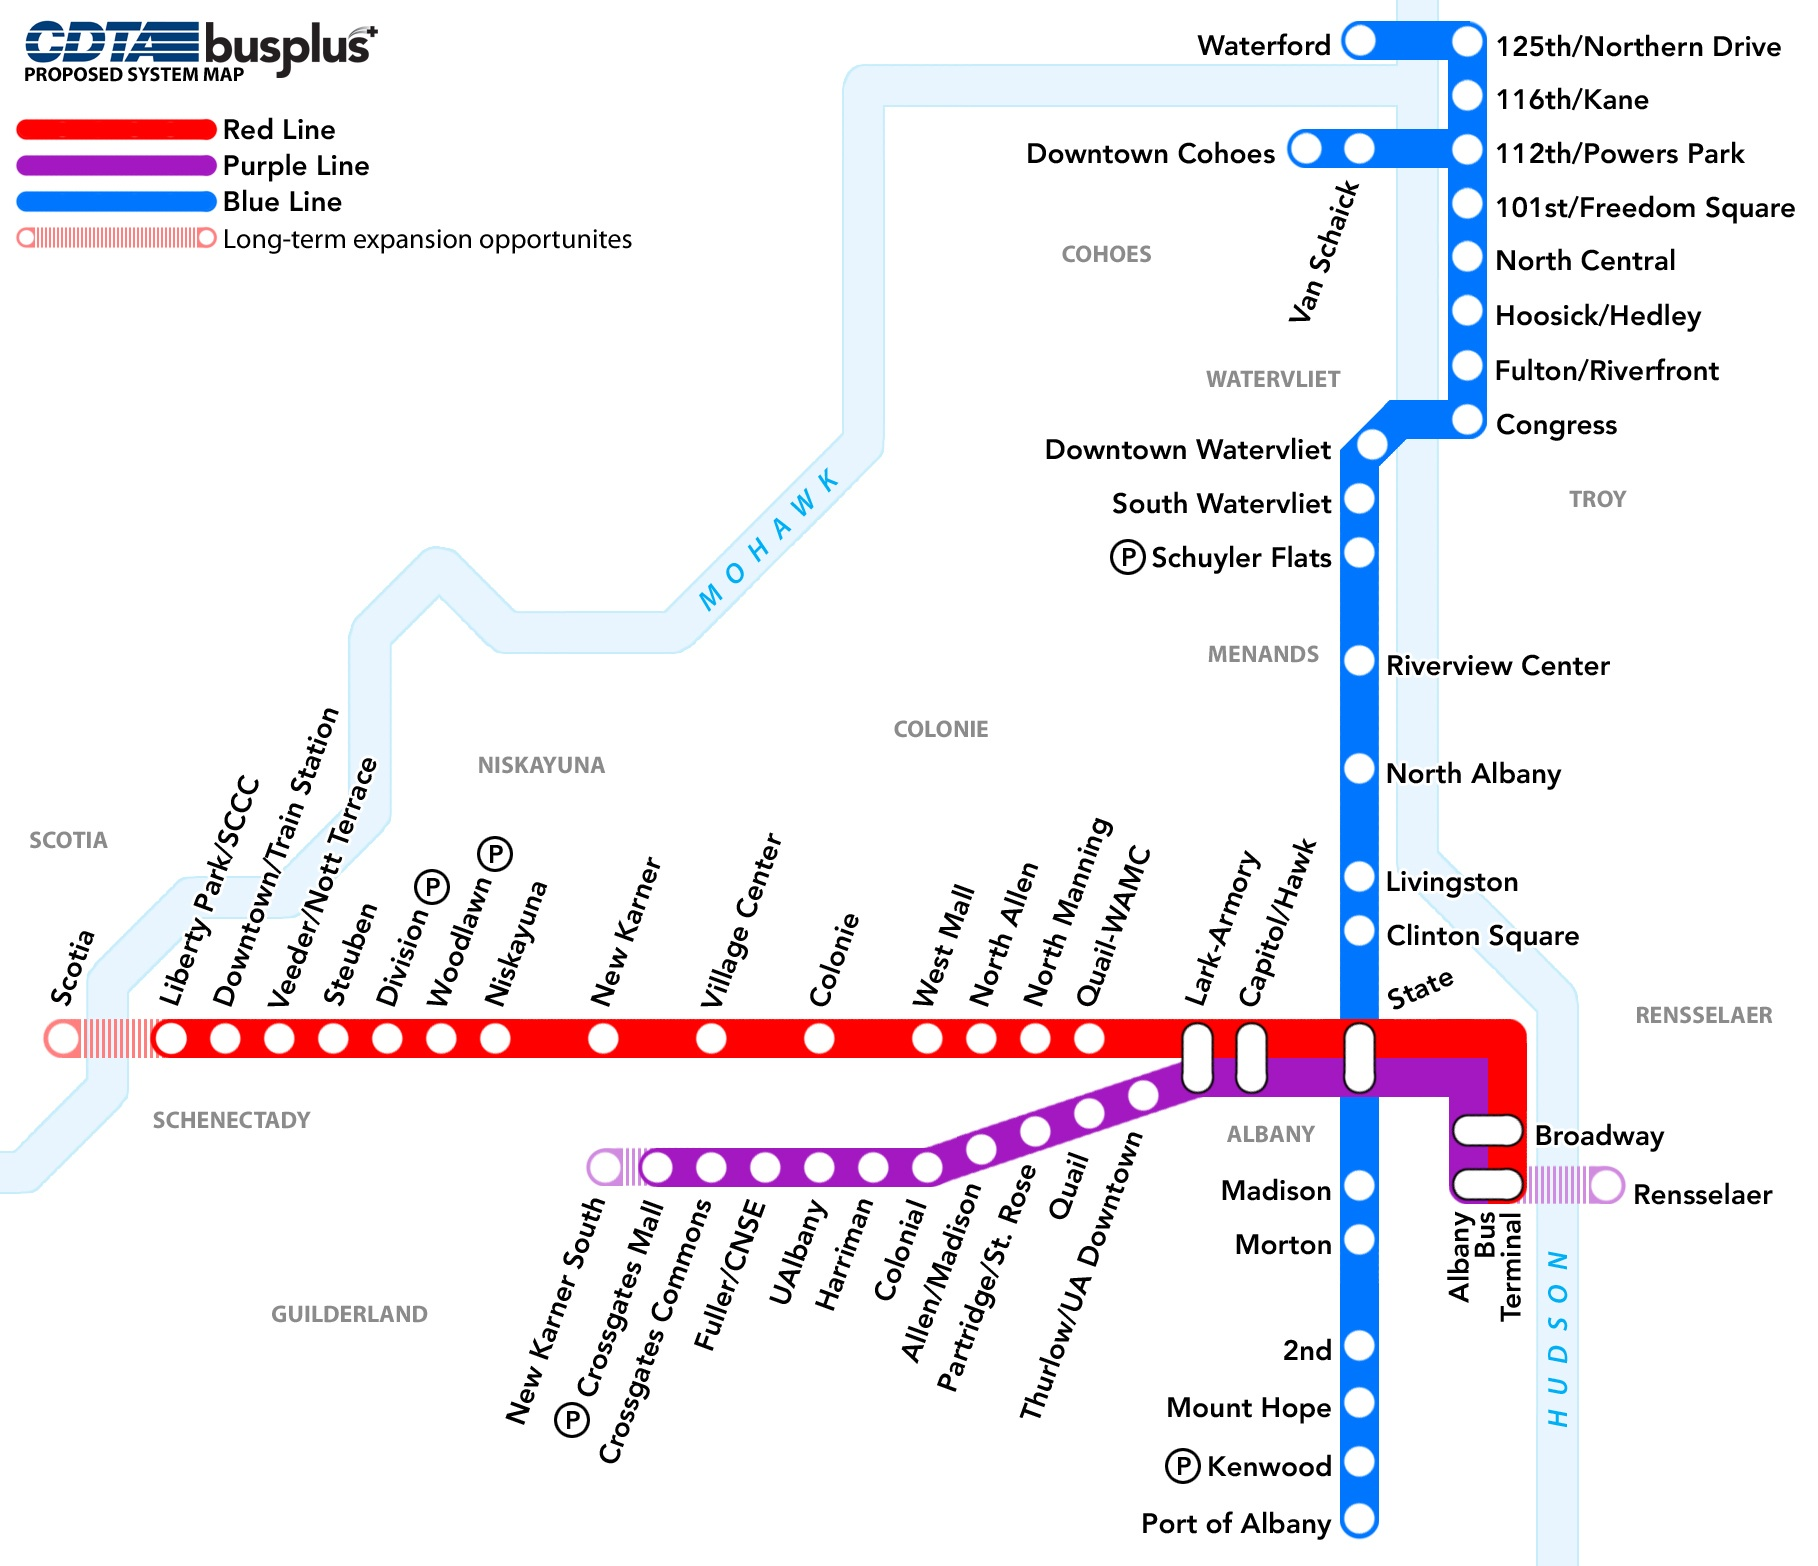 A map of the proposed BusPlus network.The Regional Development Plan called for improvements to mass transit. CDTA's BusPlus network is aimed at bringing improved rider experience with faster service. This map shows the BusPlus routes stretching from downtown Albany to Troy, Schenectady, and Crossgates Mall.